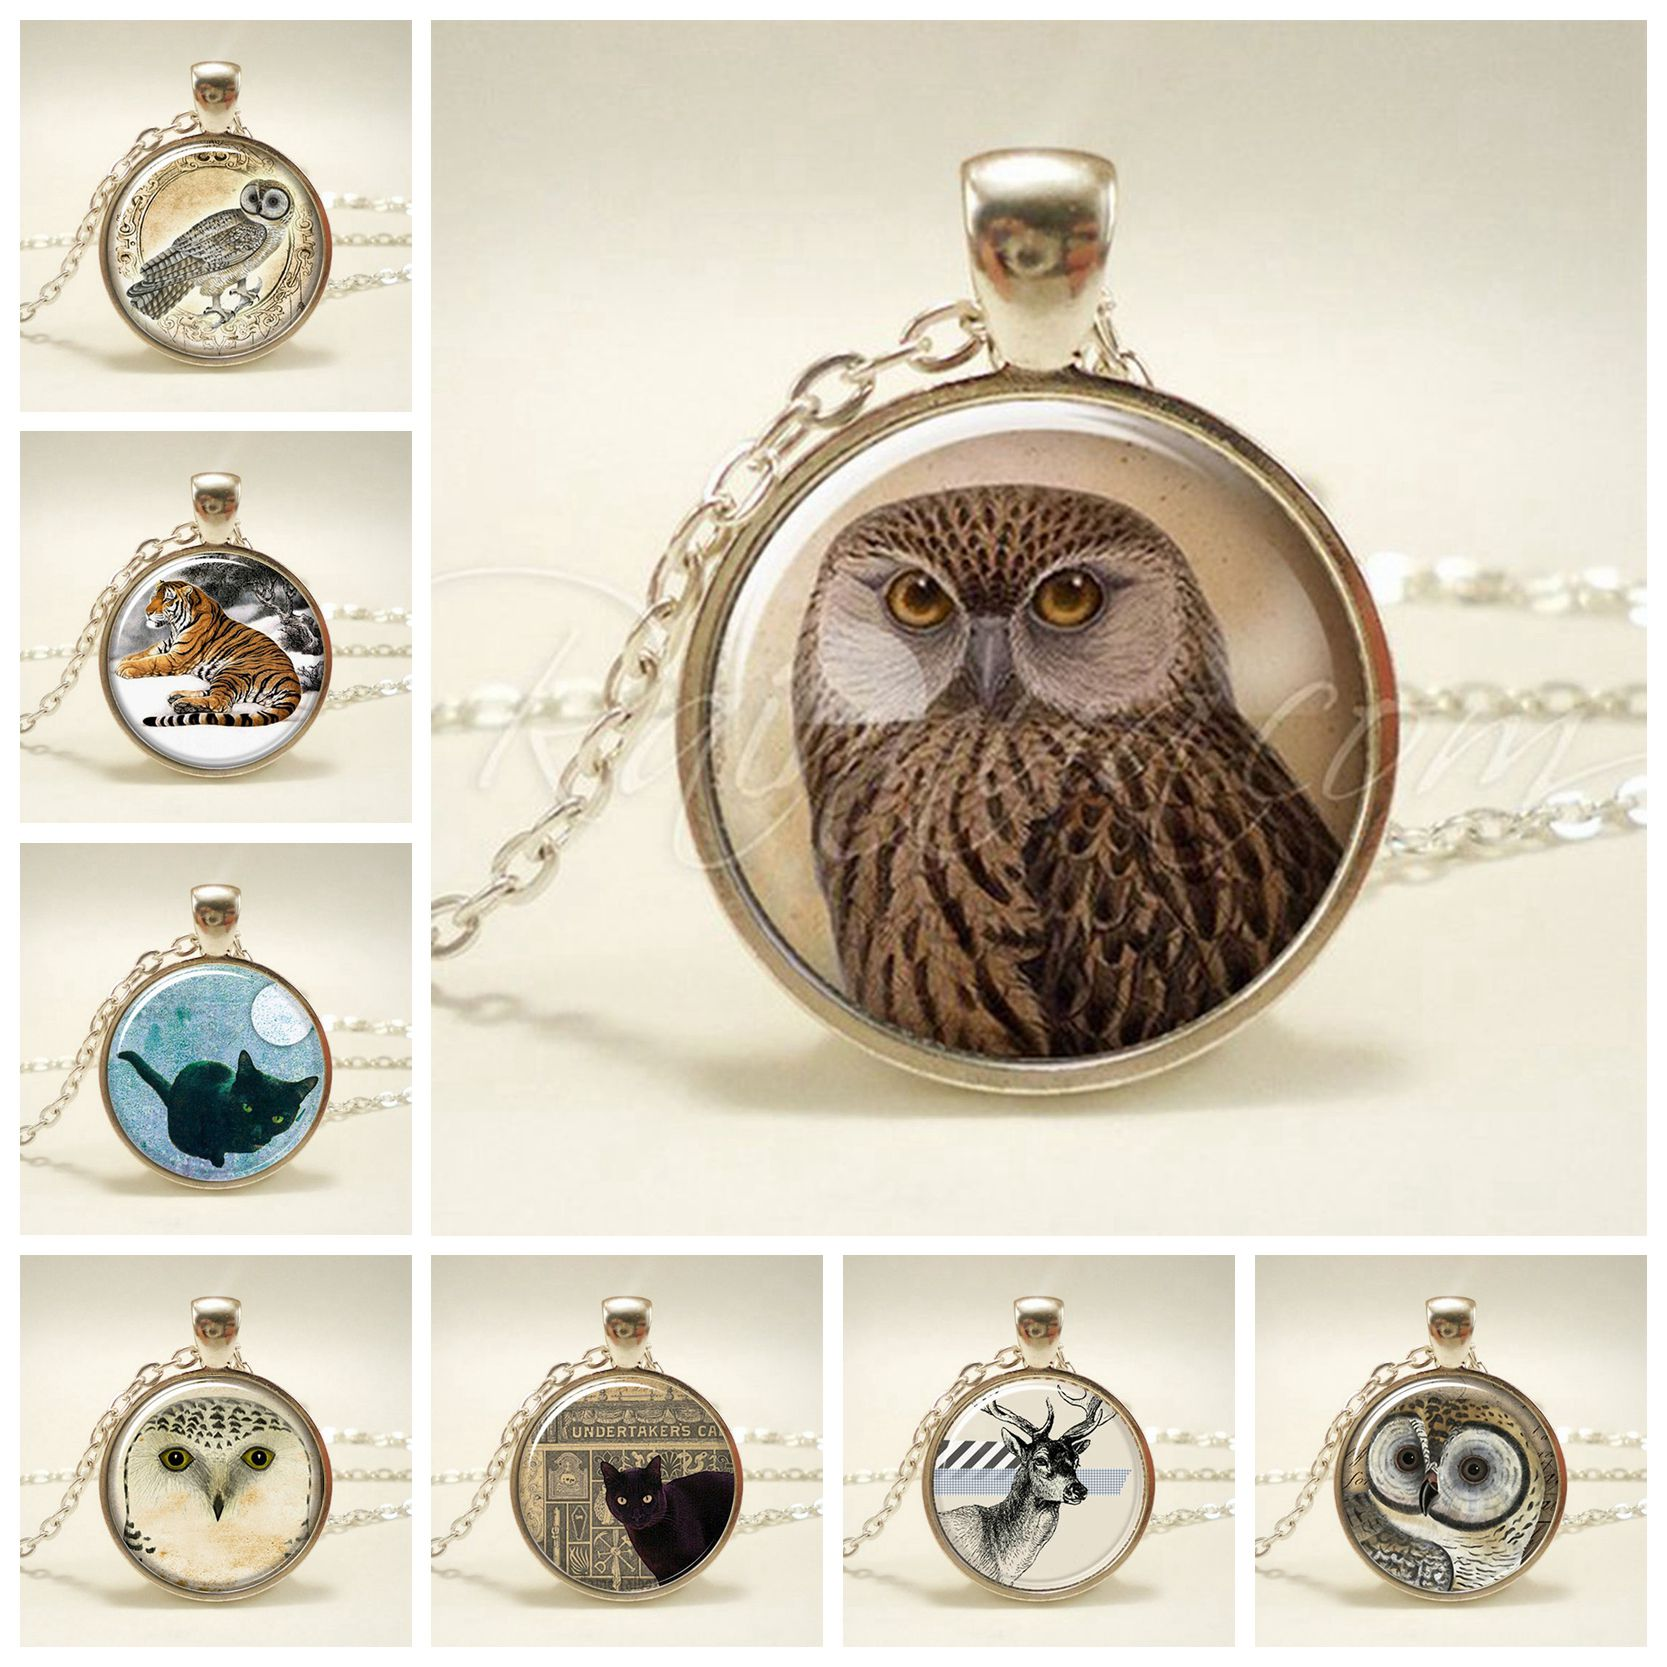 Silver Necklace Pendant Elk Owl Pattern Pendant Necklace Glass Cabochon Chain Art Fashion Handcrafted Animal Lover Best Gift